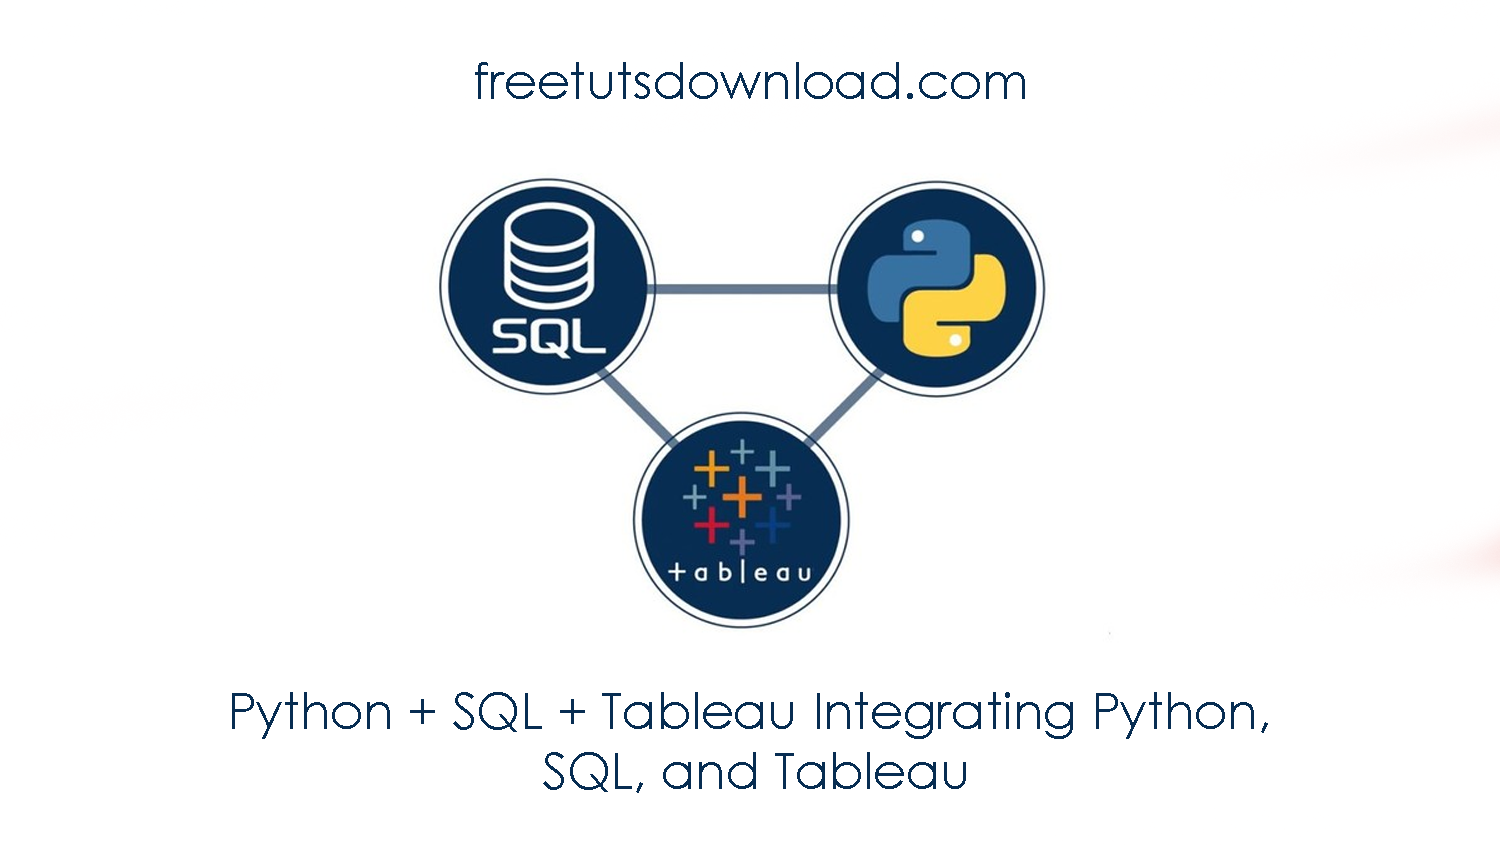 Python + SQL + Tableau Integrating Python, SQL, and Tableau free download